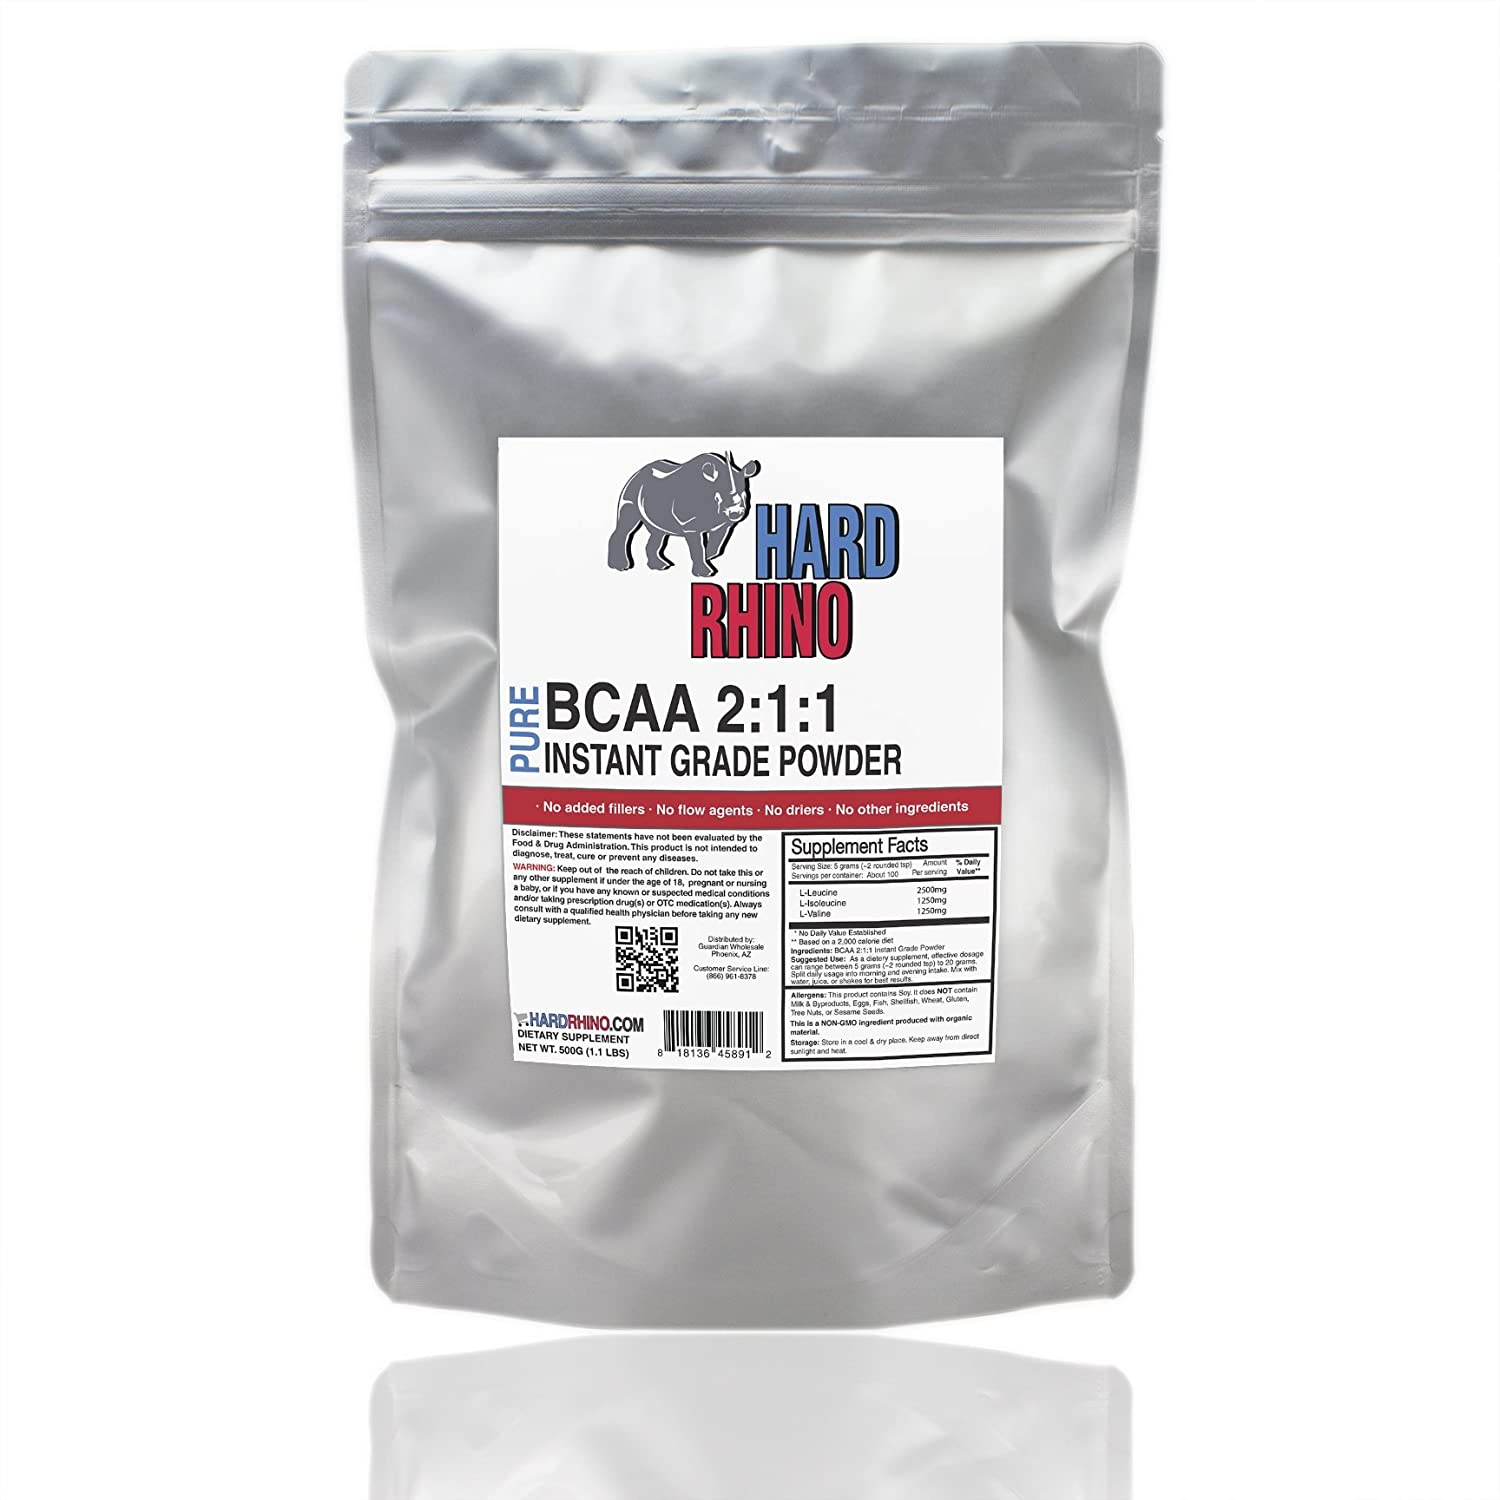 Hard B006HLYO12 Rhino BCAA Hard 2:1:1 Instantized Branched Chain Amino Acid Scoop Powder, 500 Grams (1.1 Lbs), Unflavored, Lab-Tested, Scoop Included by Hard Rhino B006HLYO12, いまどき本舗:e4c99b04 --- dakuwebsite.xyz